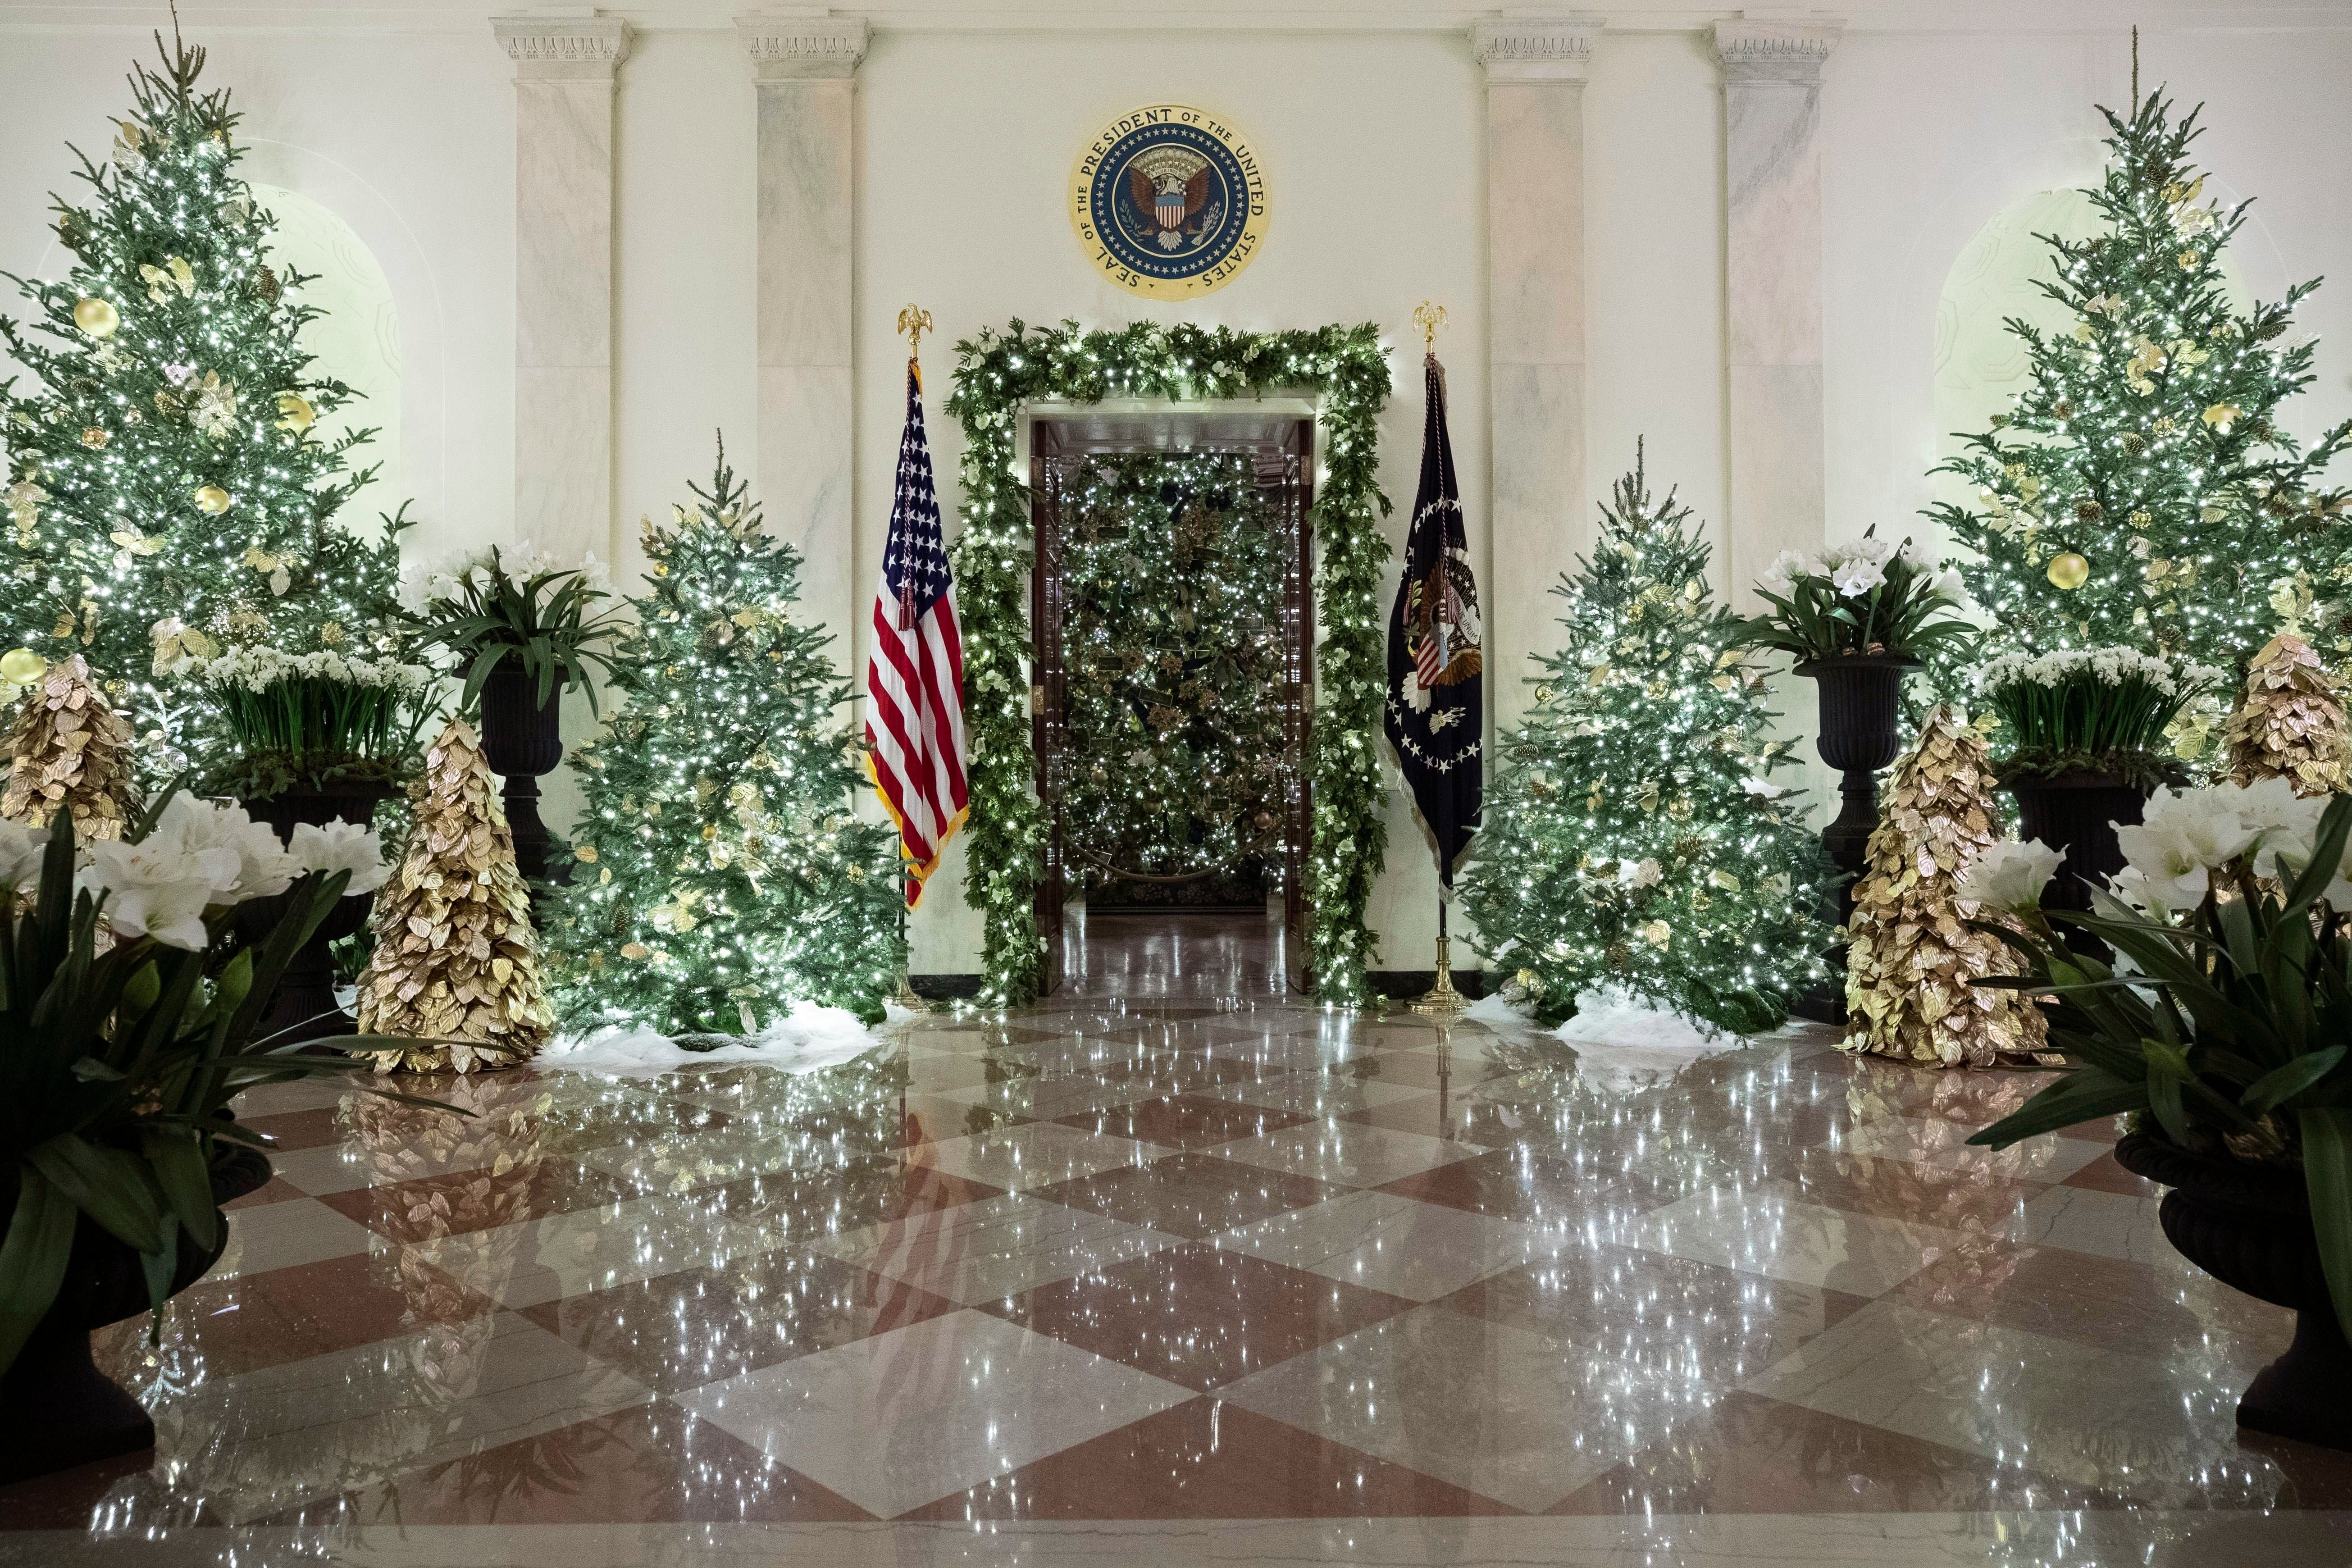 Mandatory Credit: Photo by Alex Brandon/AP/Shutterstock (10489702p) The official White House Christmas tree is decorated in the Blue Room seen through the Cross Hall, during the 2019 Christmas preview at the White House, in Washington White House Christmas, Washington, USA - 02 Dec 2019